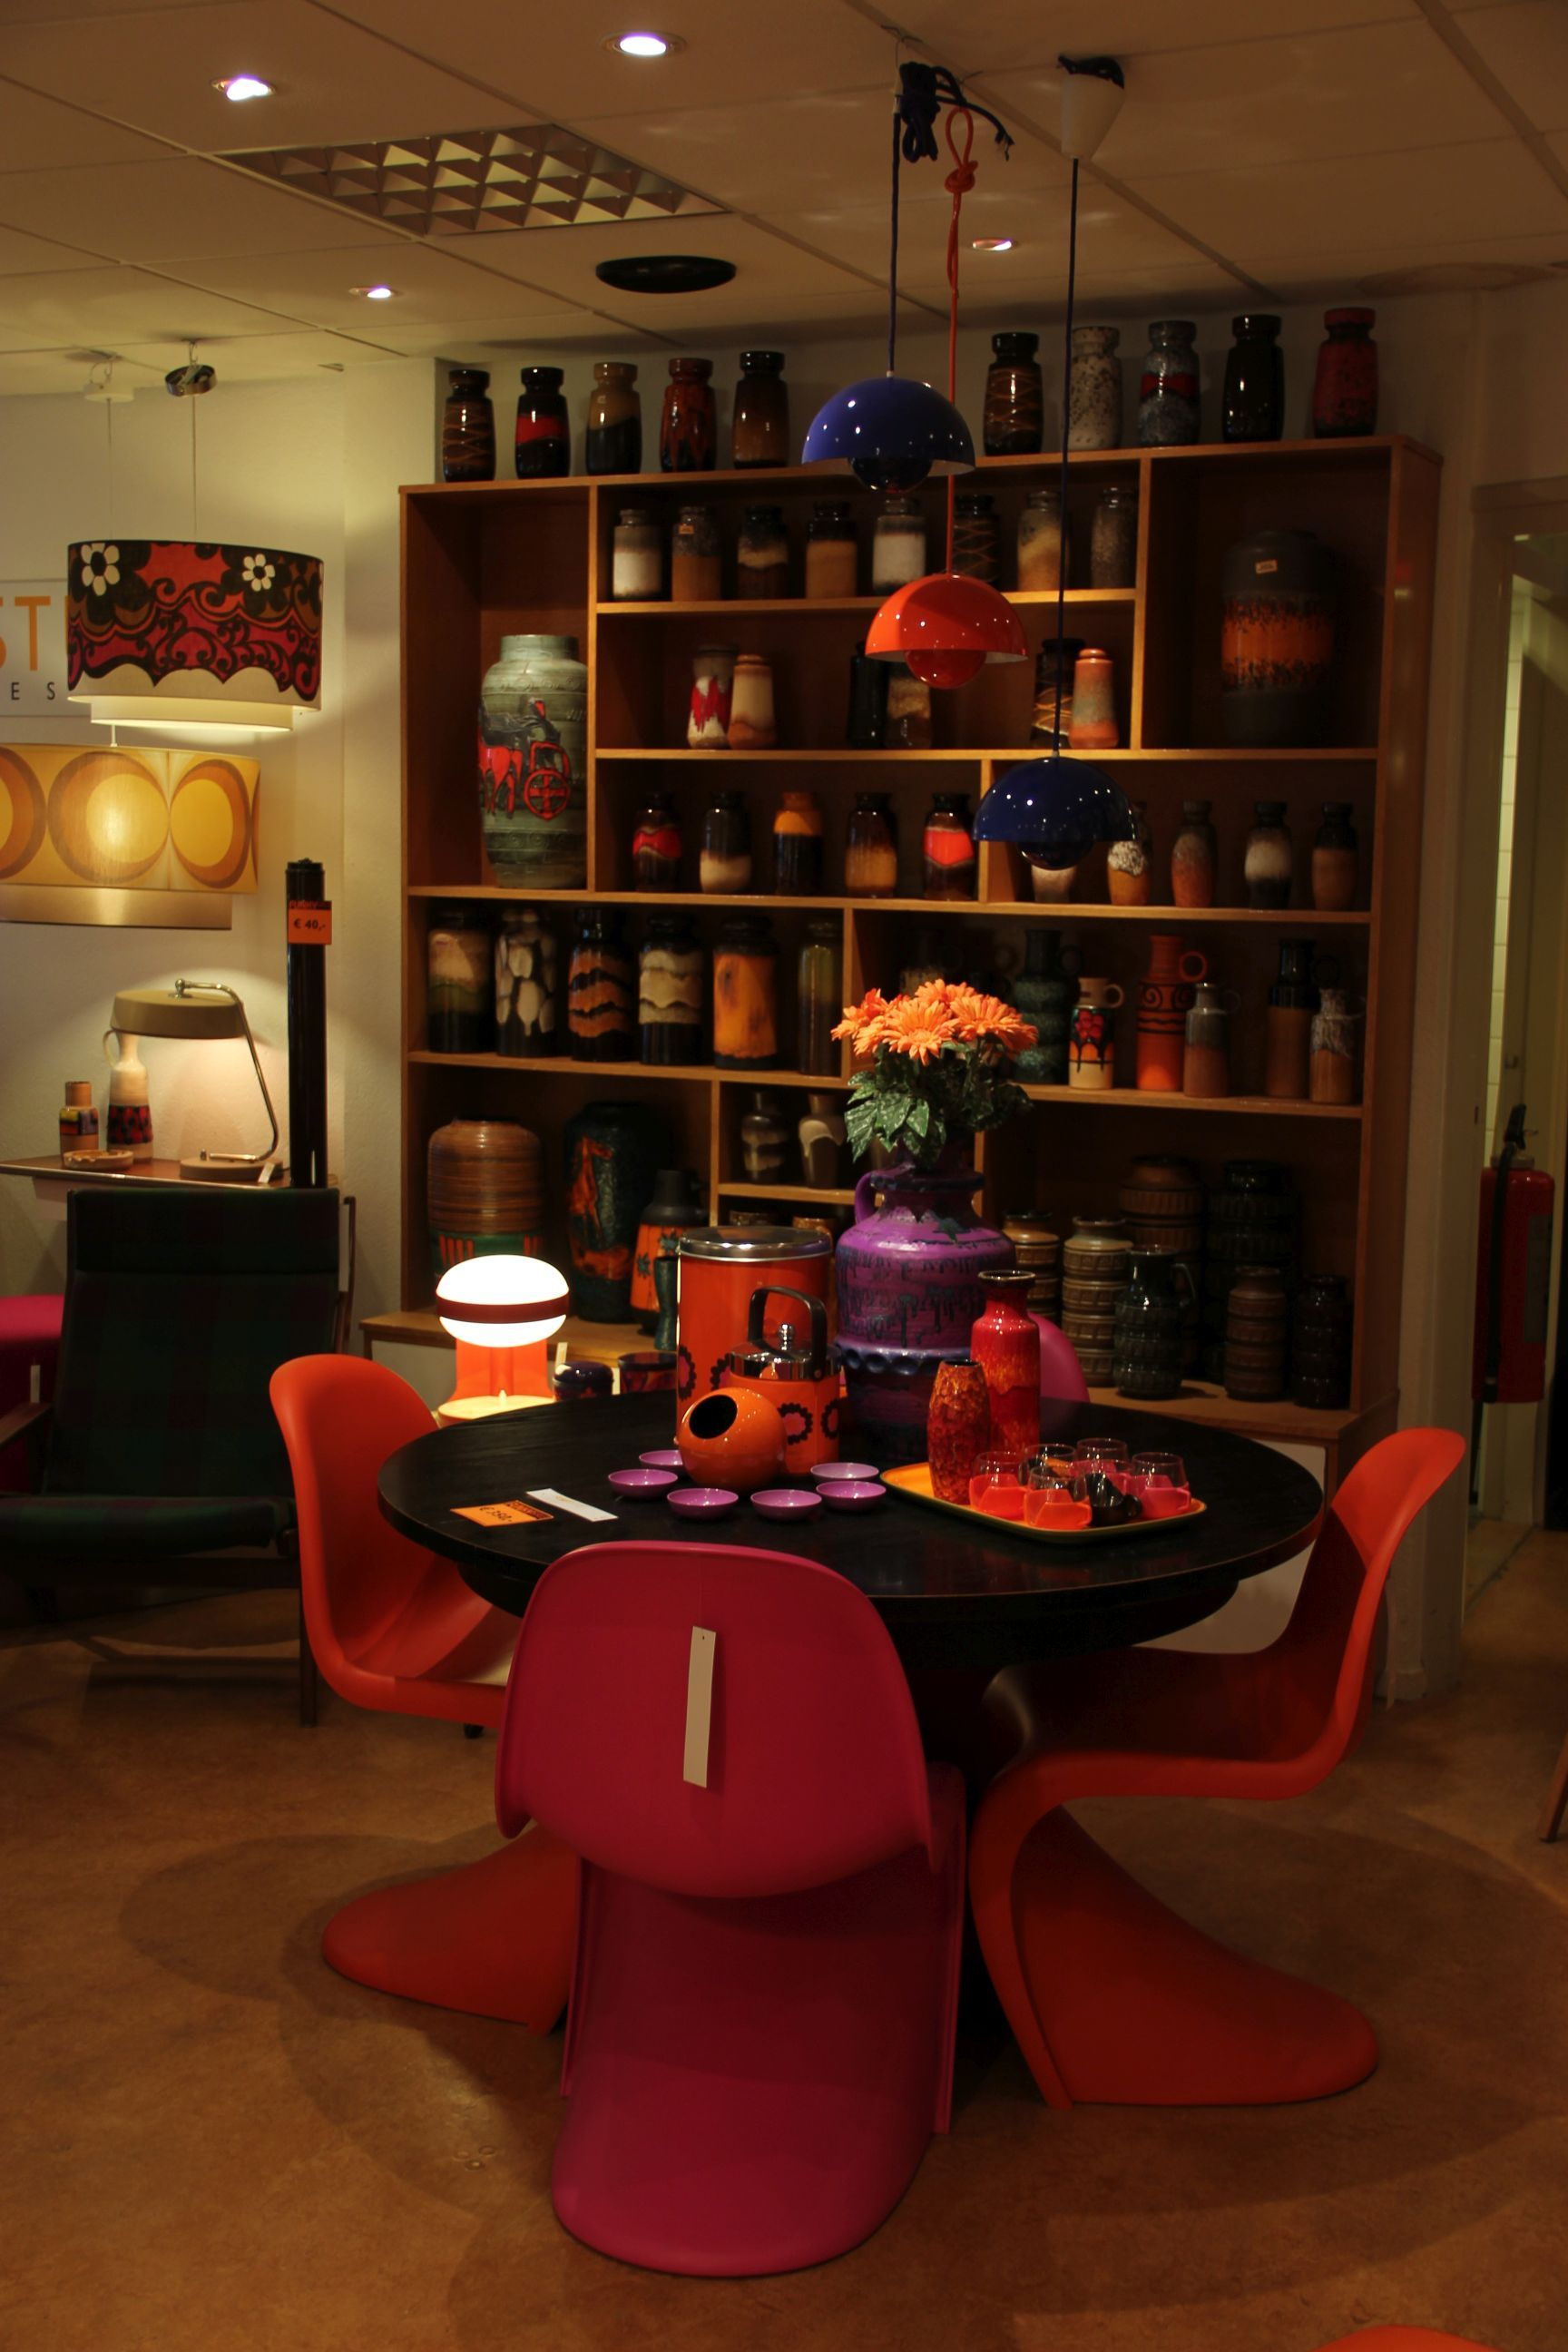 I Love The Panton Chairs In Orange And Pink!